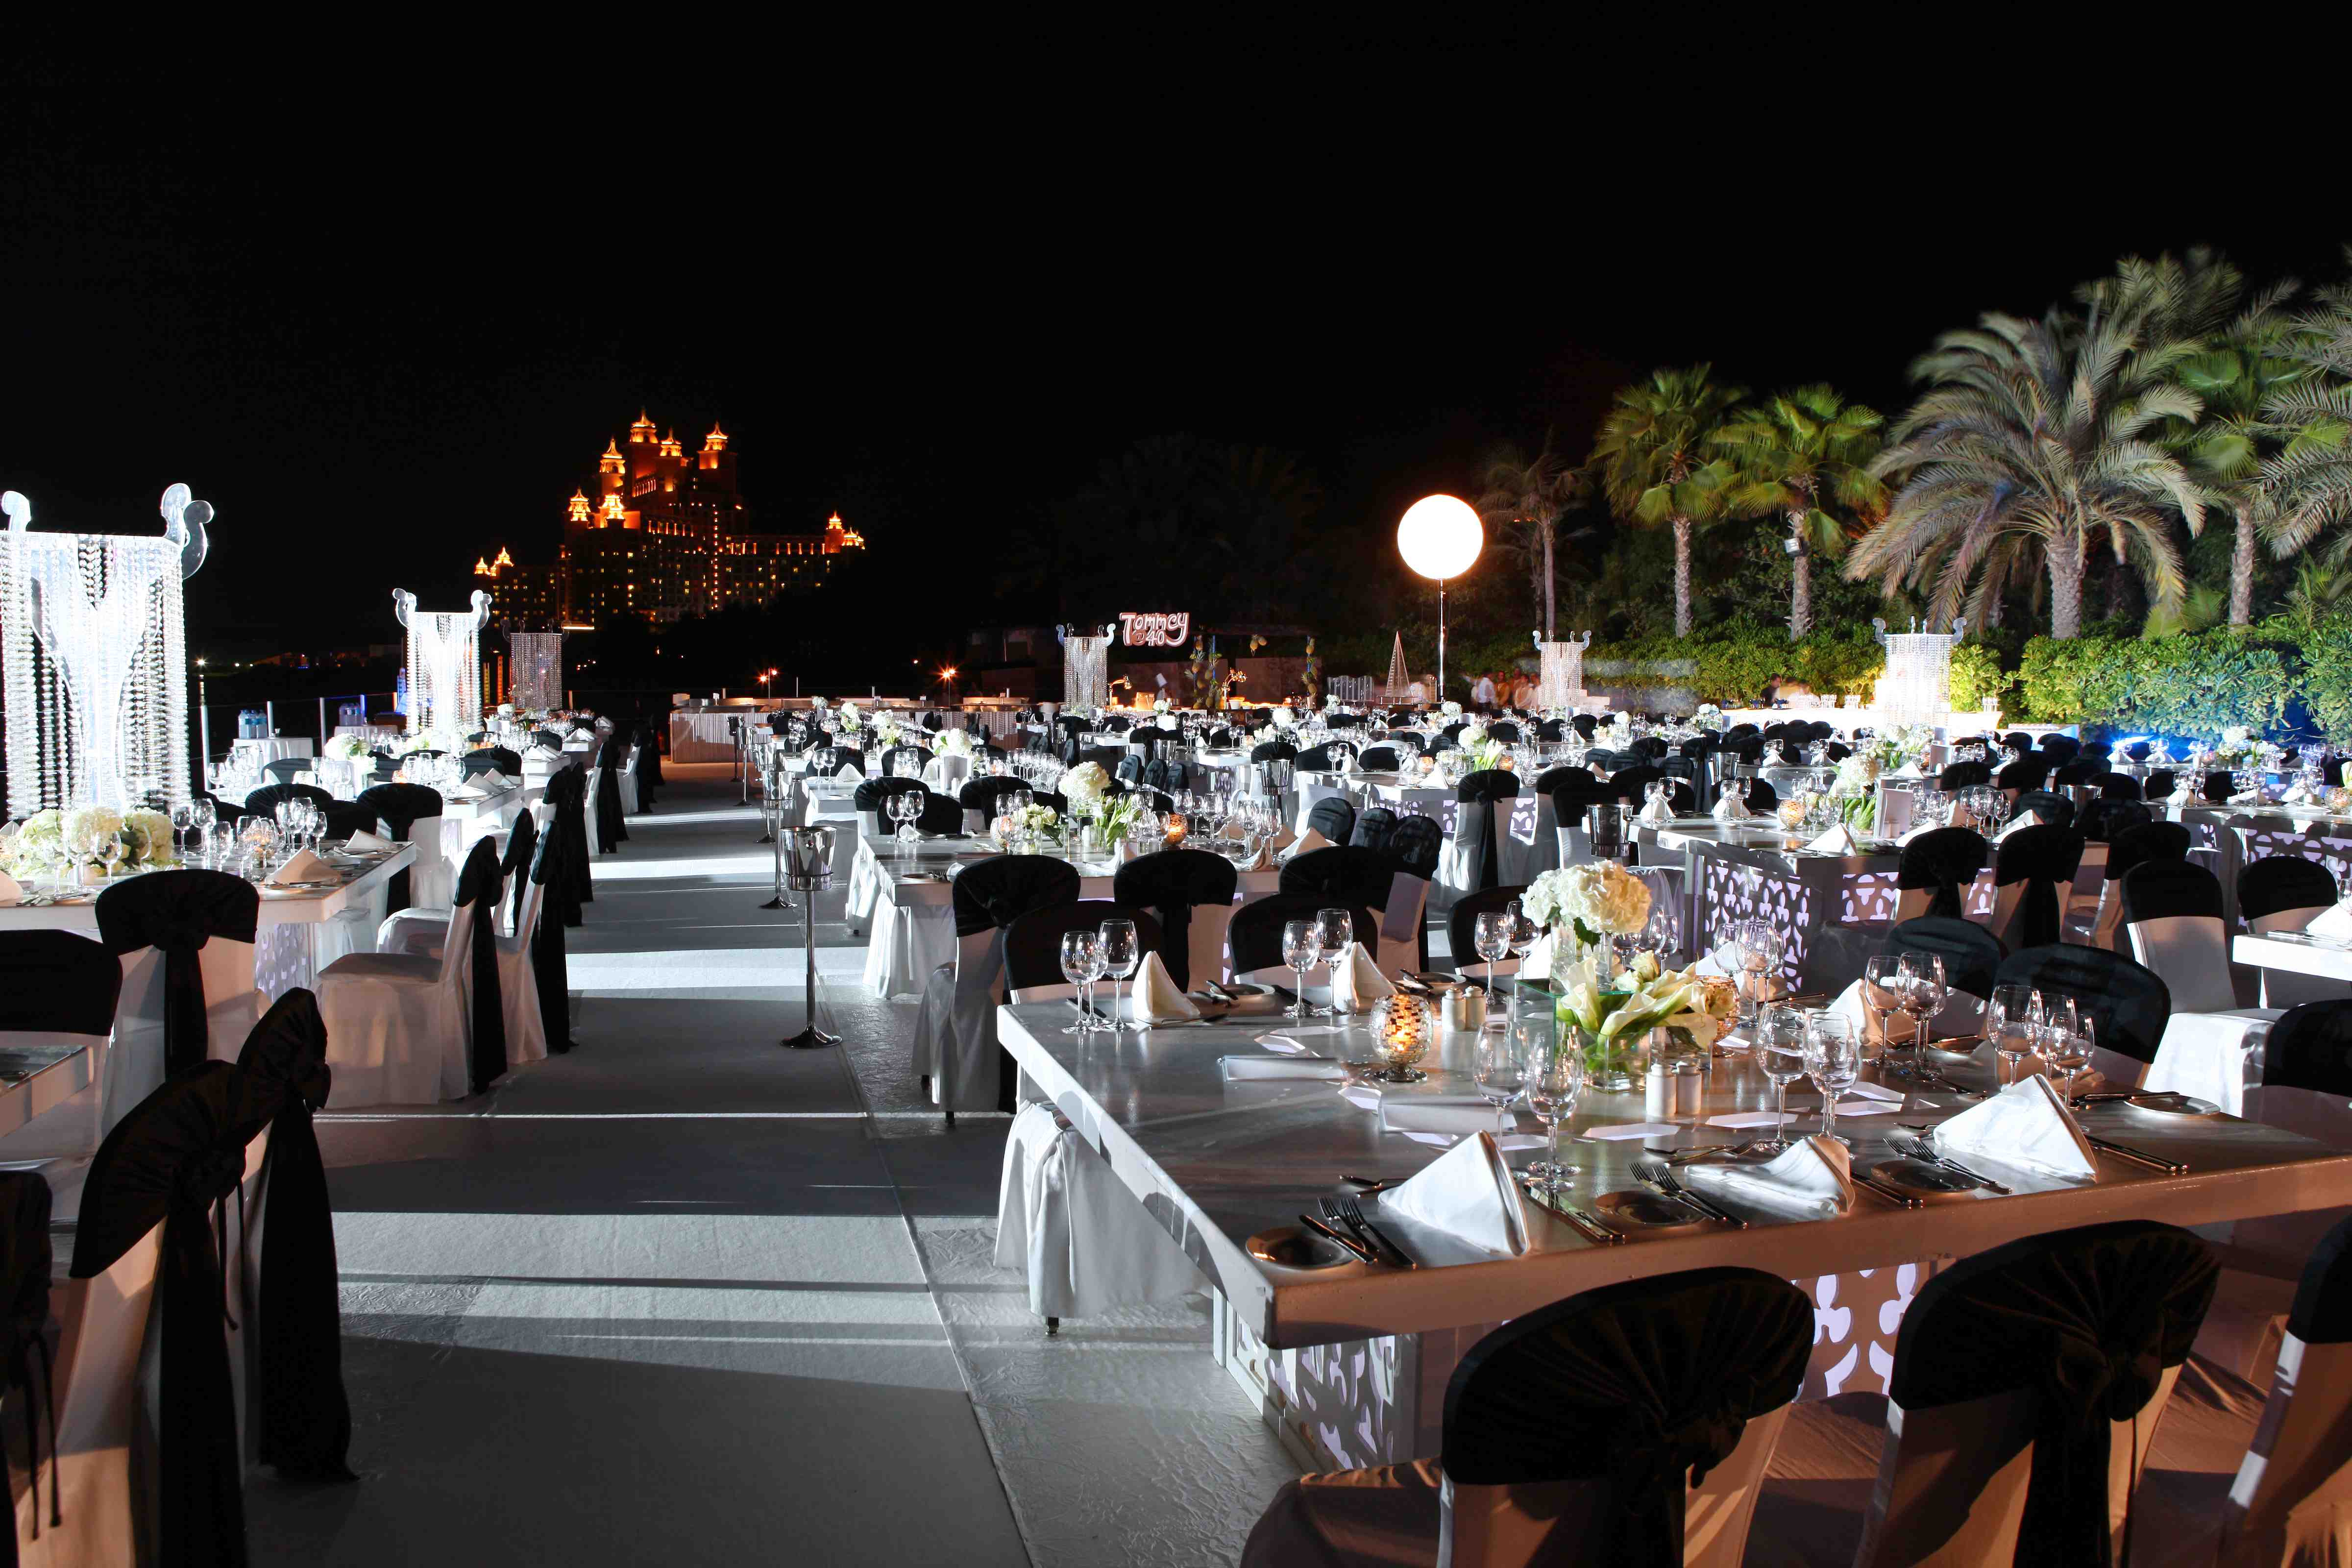 Wedding venue atlantis the palm dubai for Best hotels in dubai for honeymoon